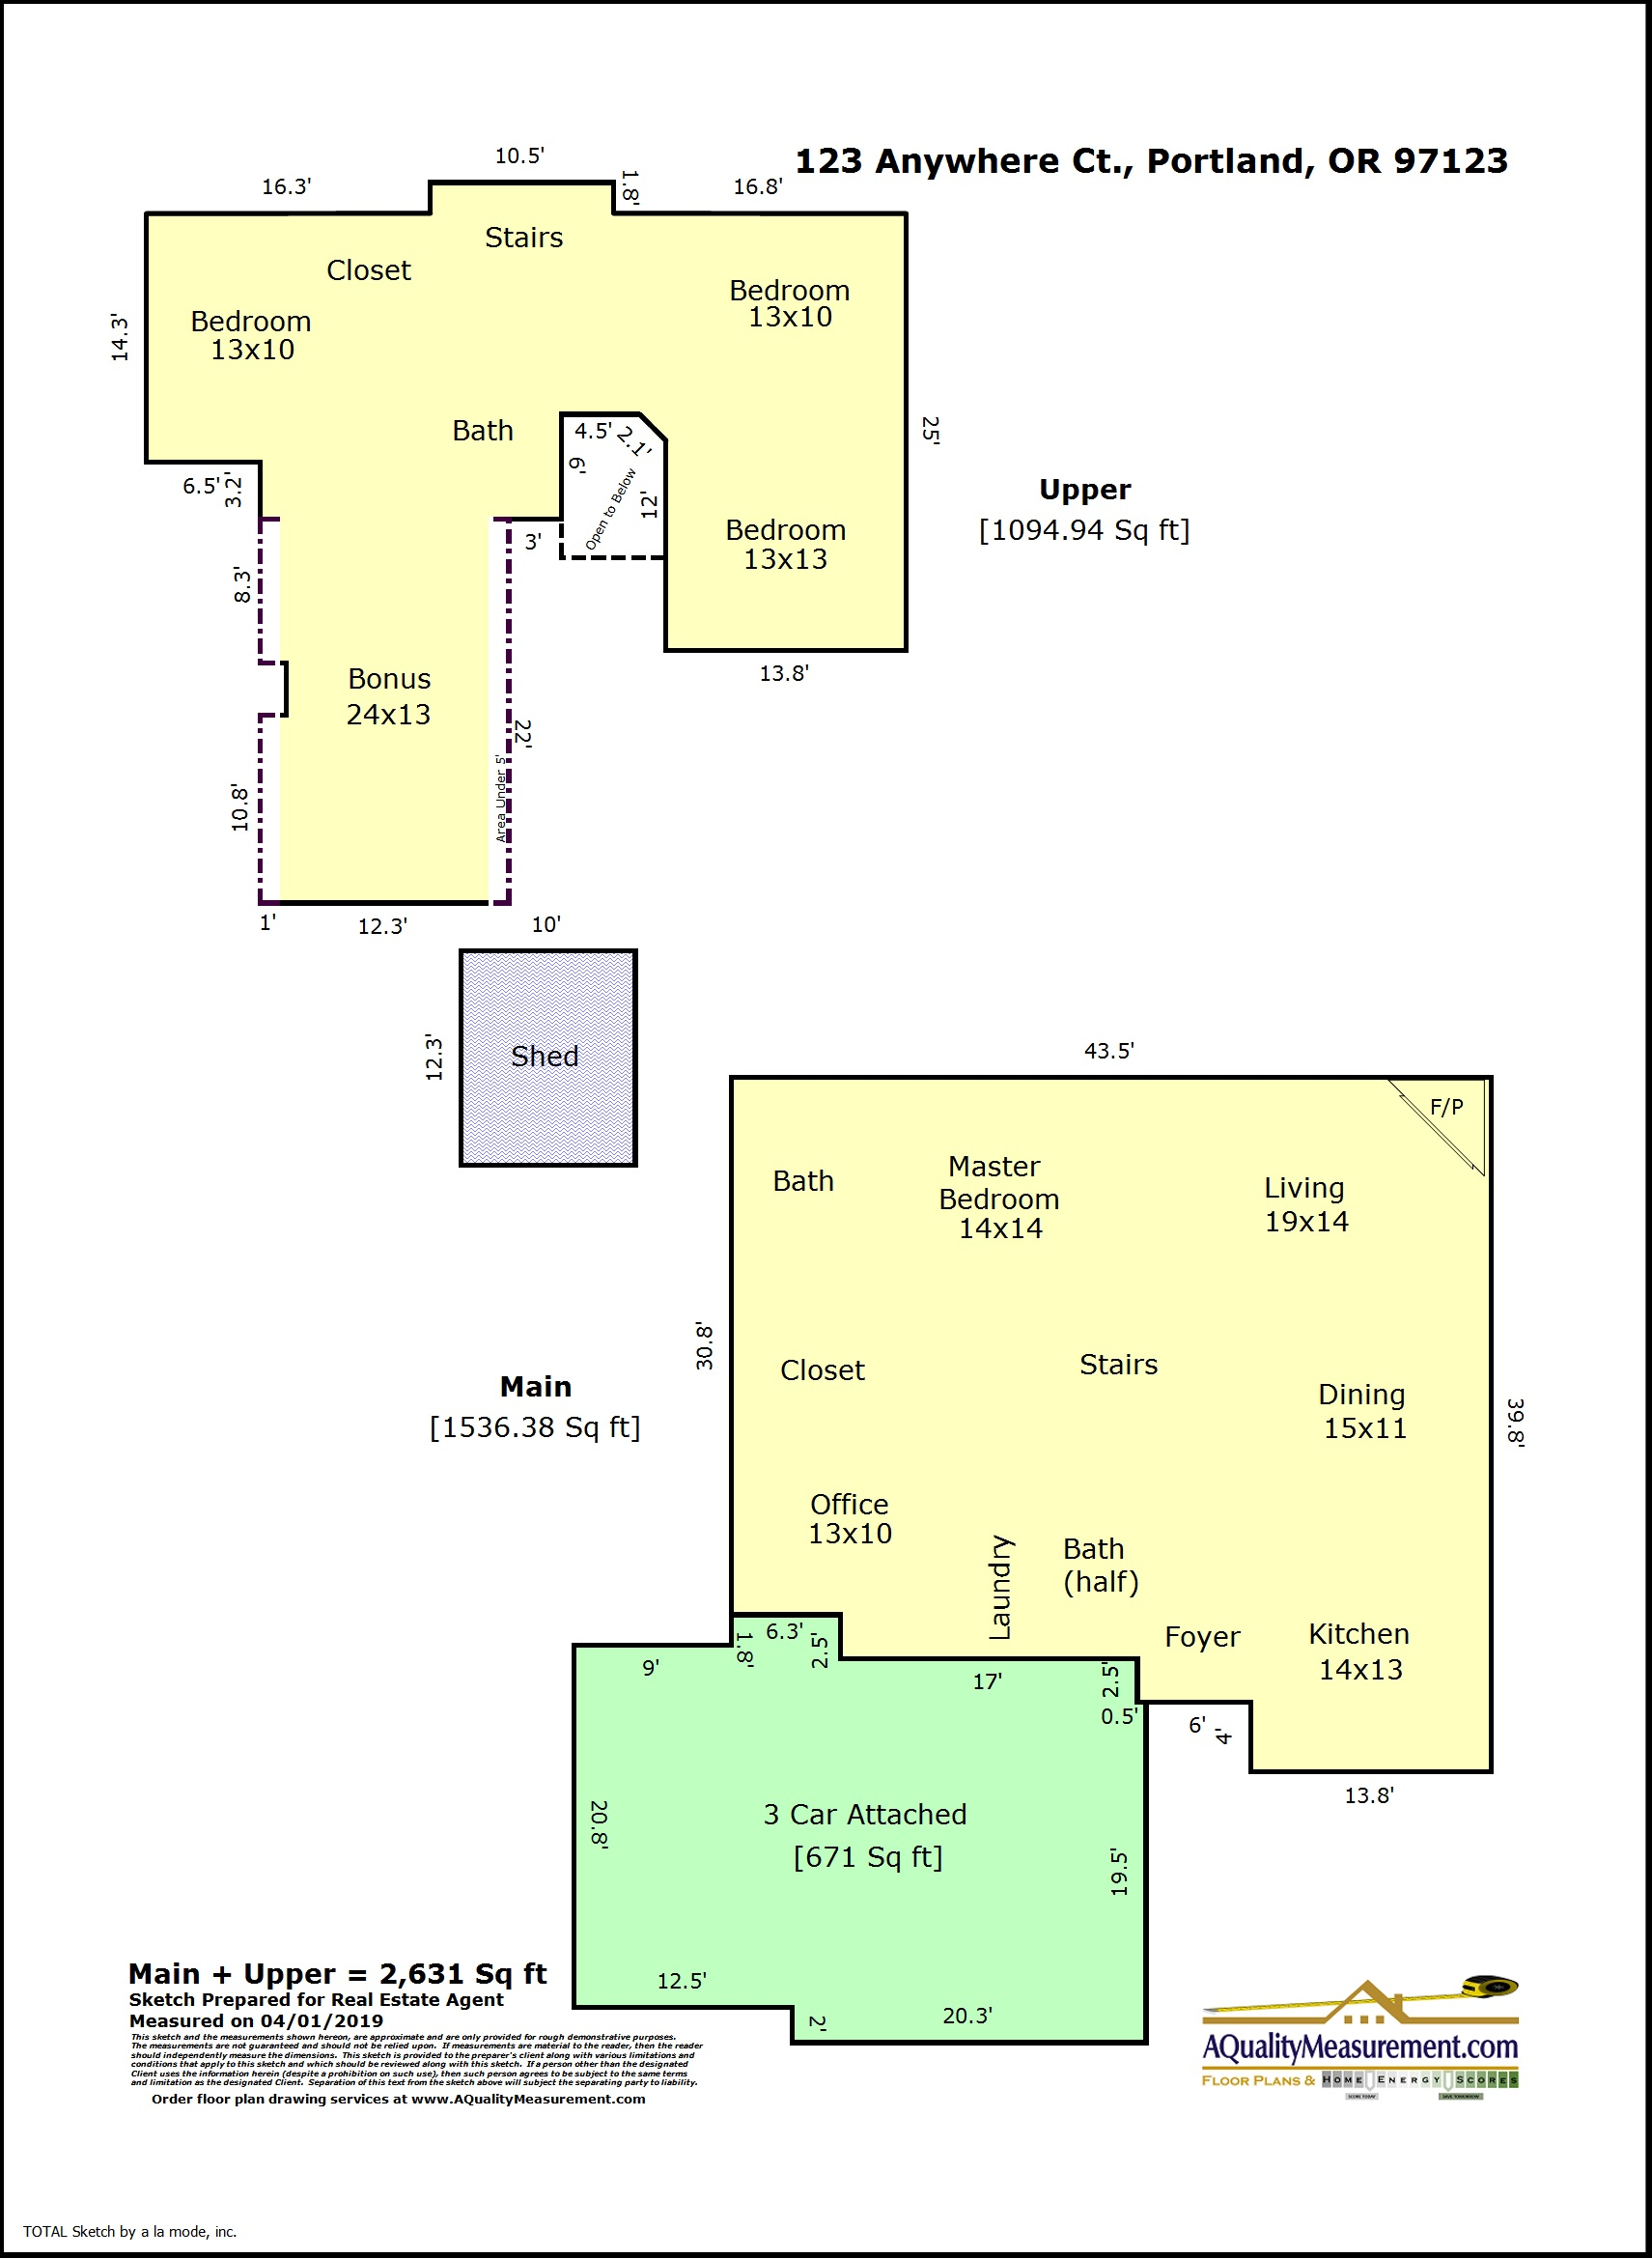 This sketch shows just what is needed to list a home with area and room measurements.